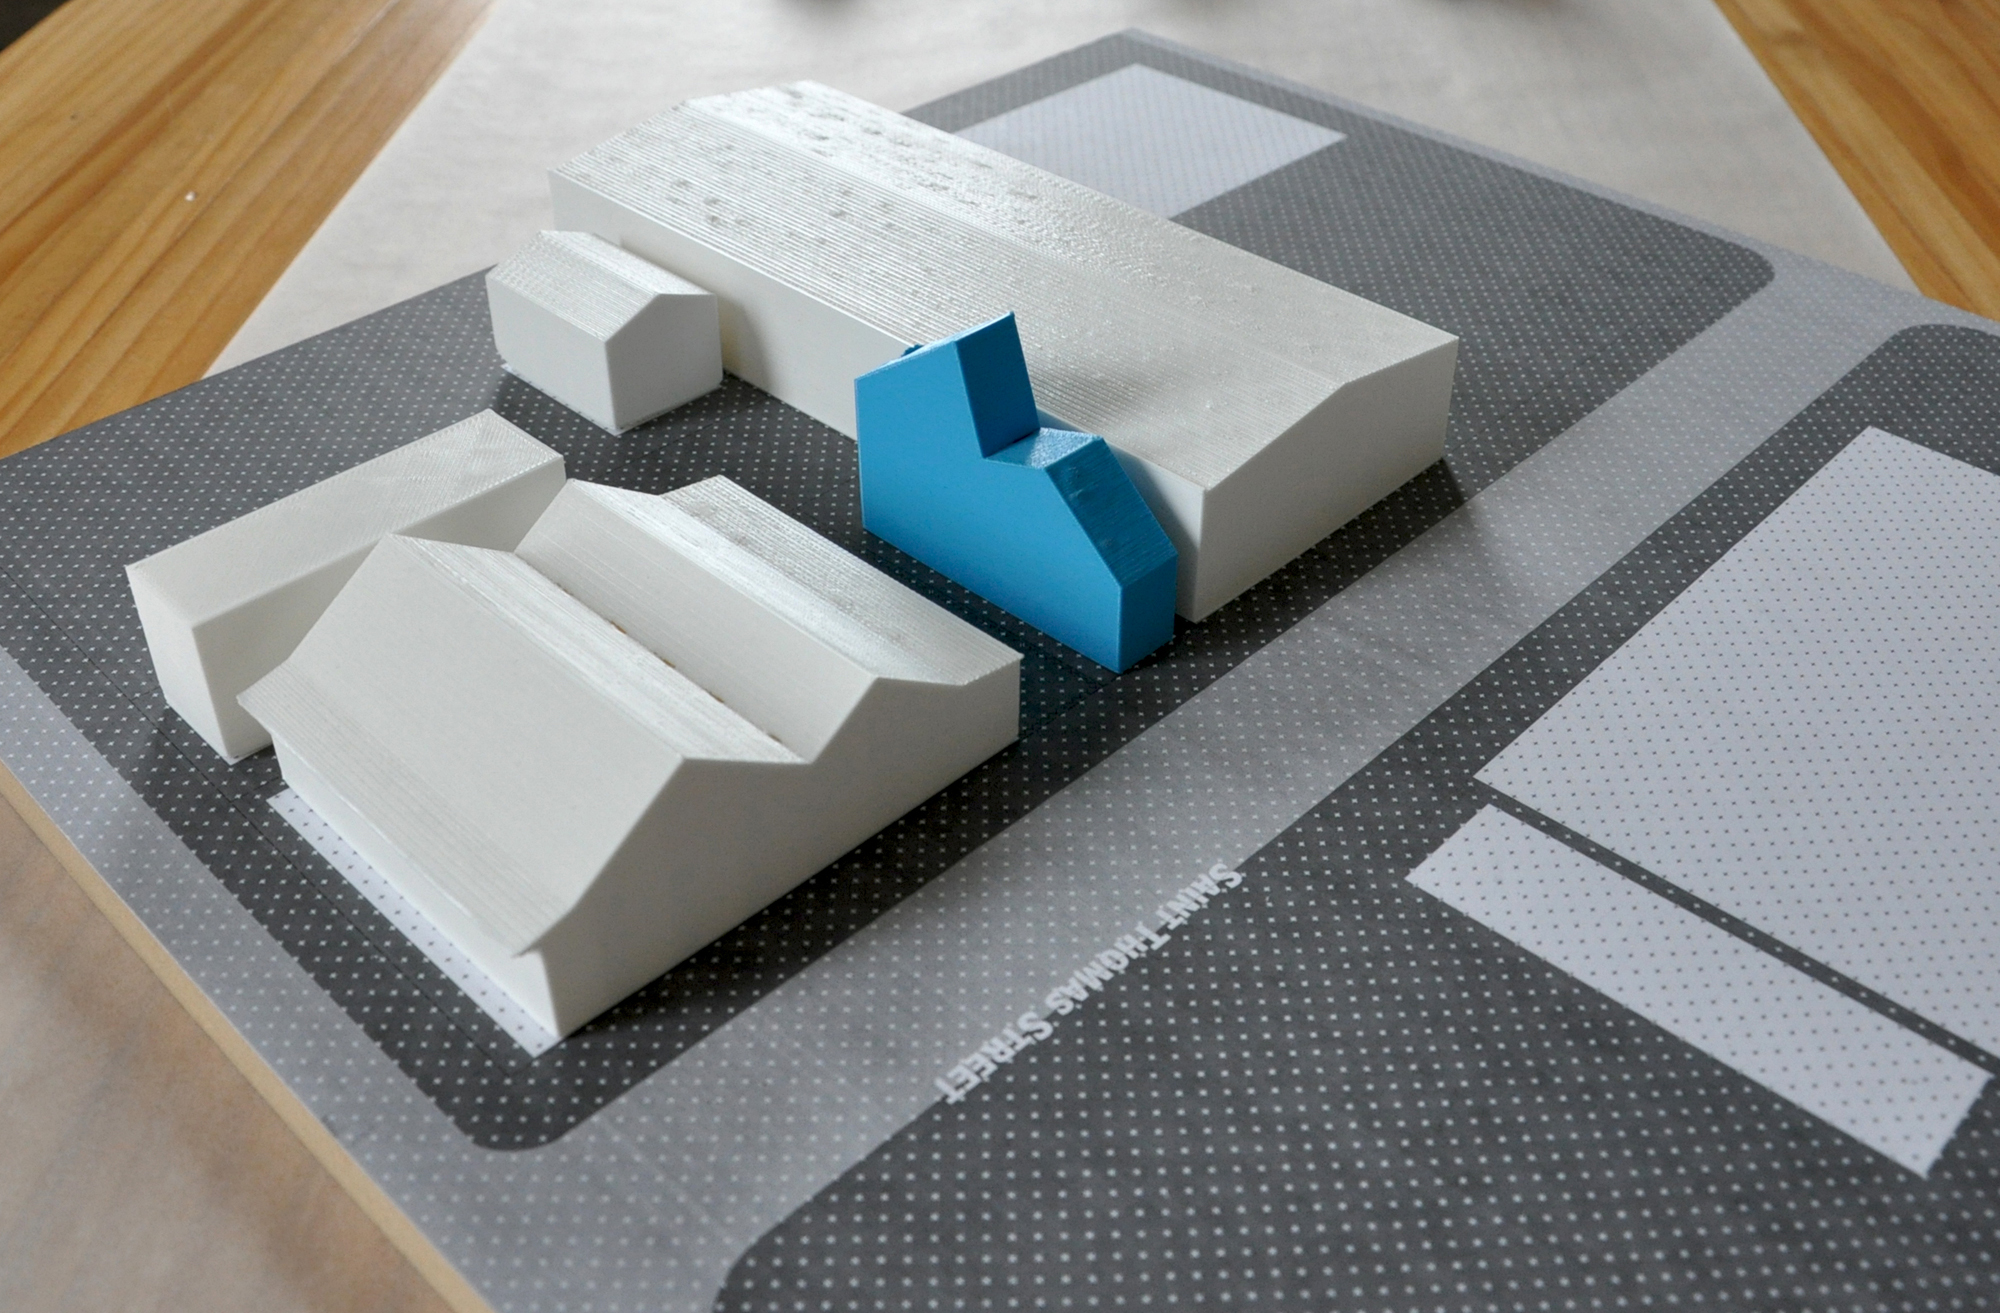 Site model of the Starter Home* No. 1 by OJT (Office of Jonathan Tate)